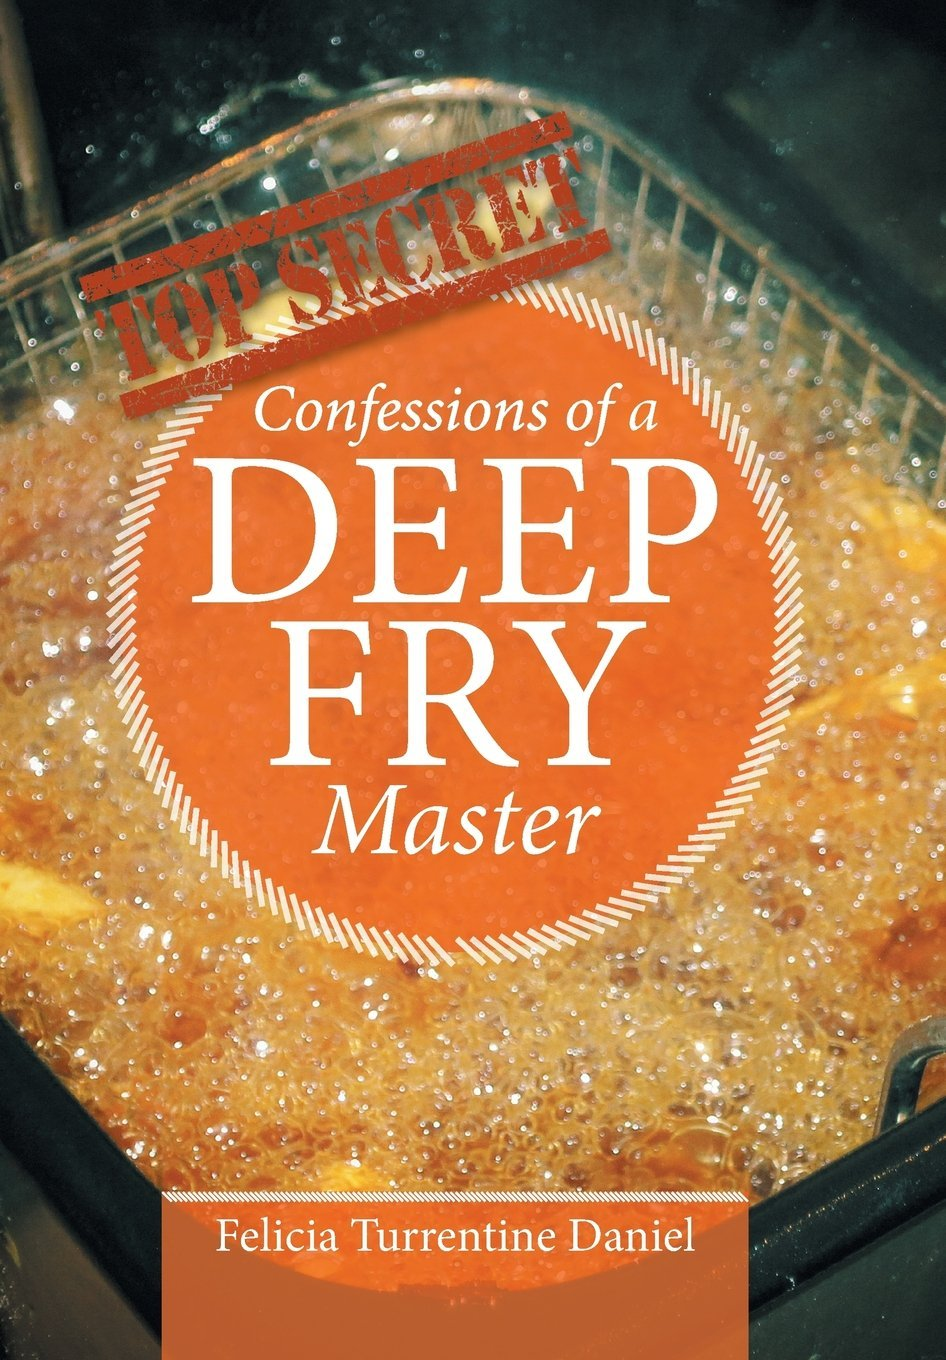 Confessions of a Deep Fried Master by Felicia Turrentine-Daniel